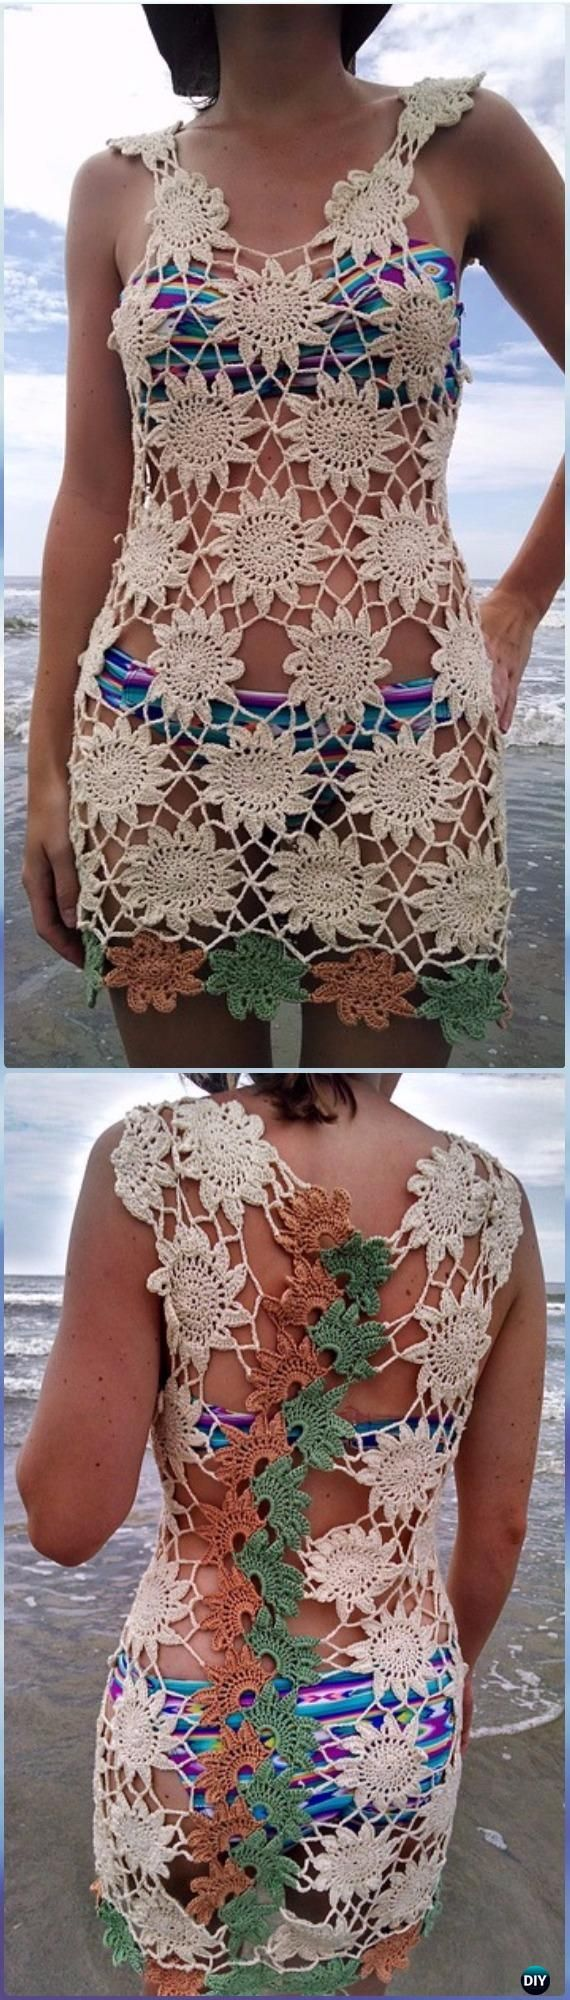 how to make a crochet cover up